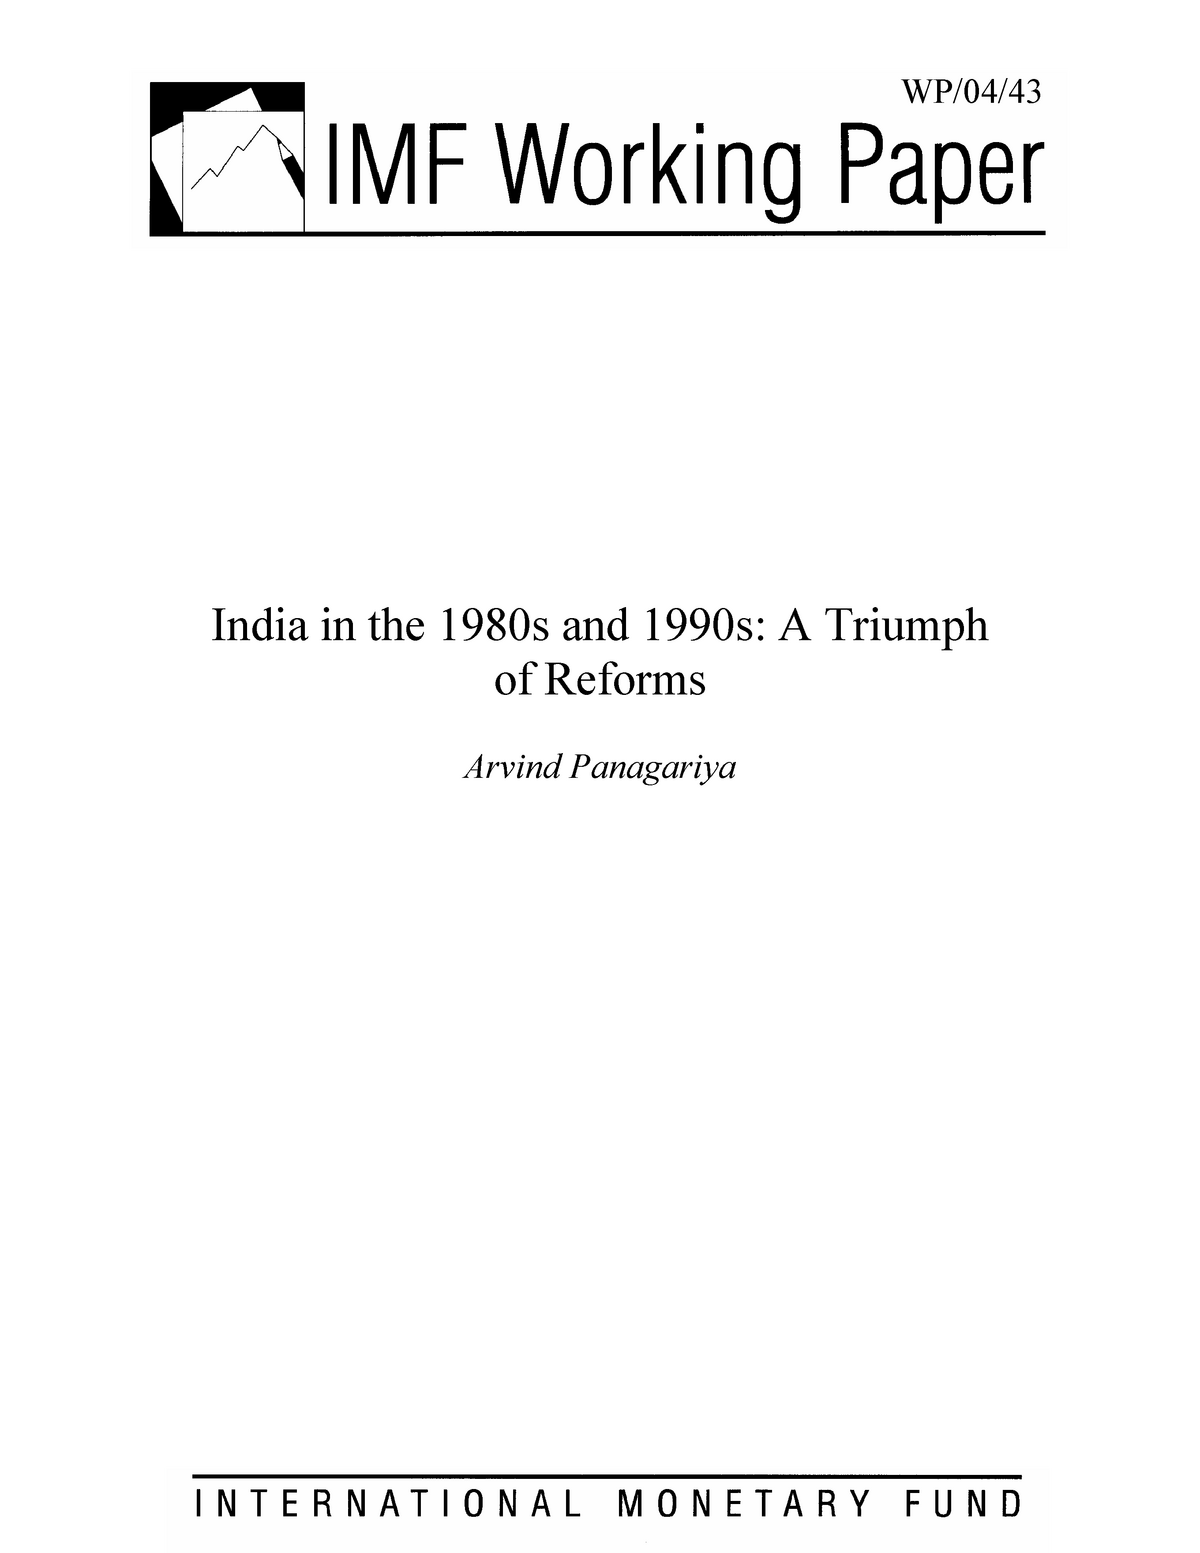 India in the 1980s and 1990s: A Triumph - ECO413: Indian